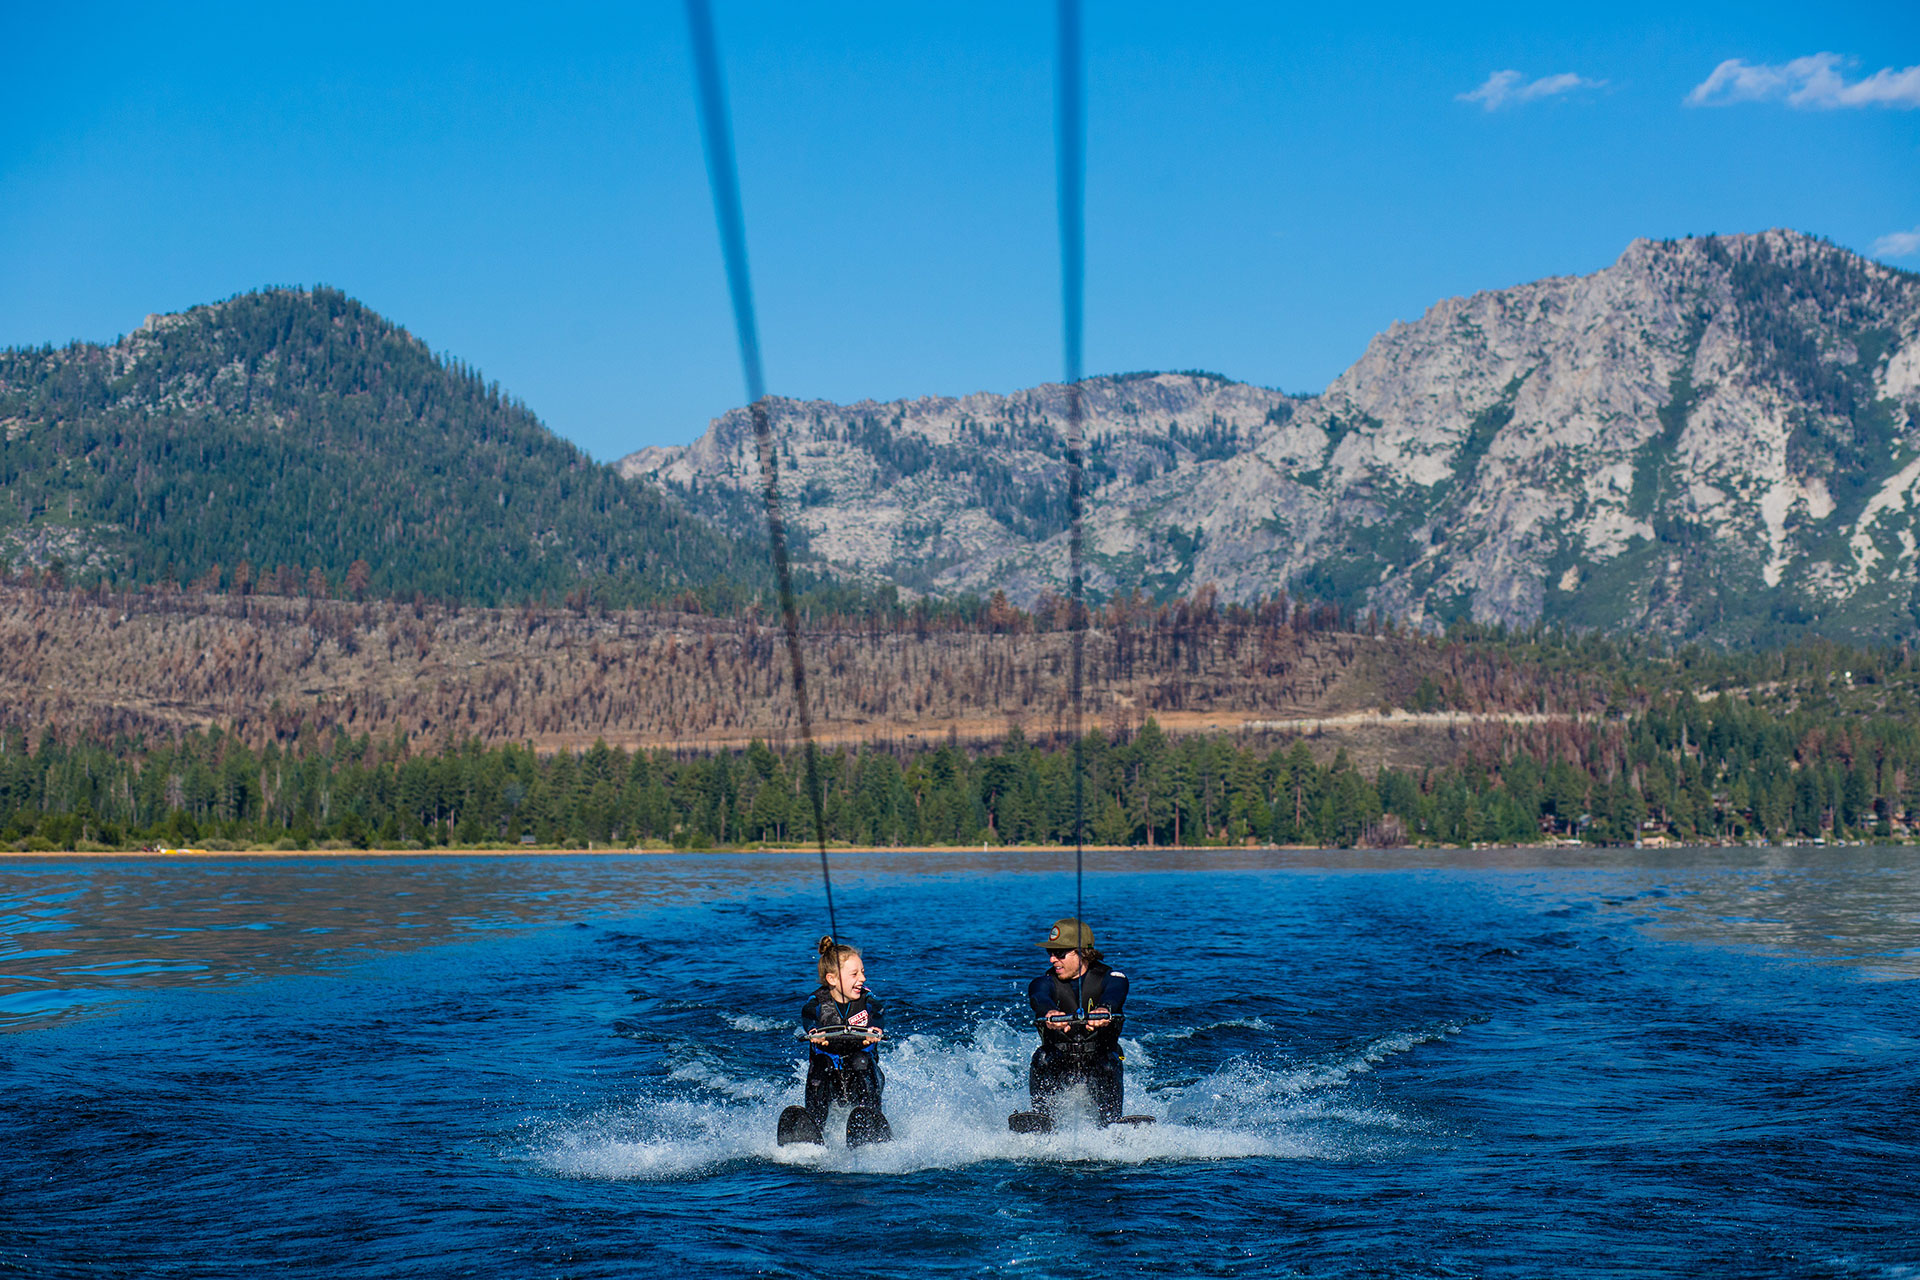 KJS_Waterski_School_027.jpg